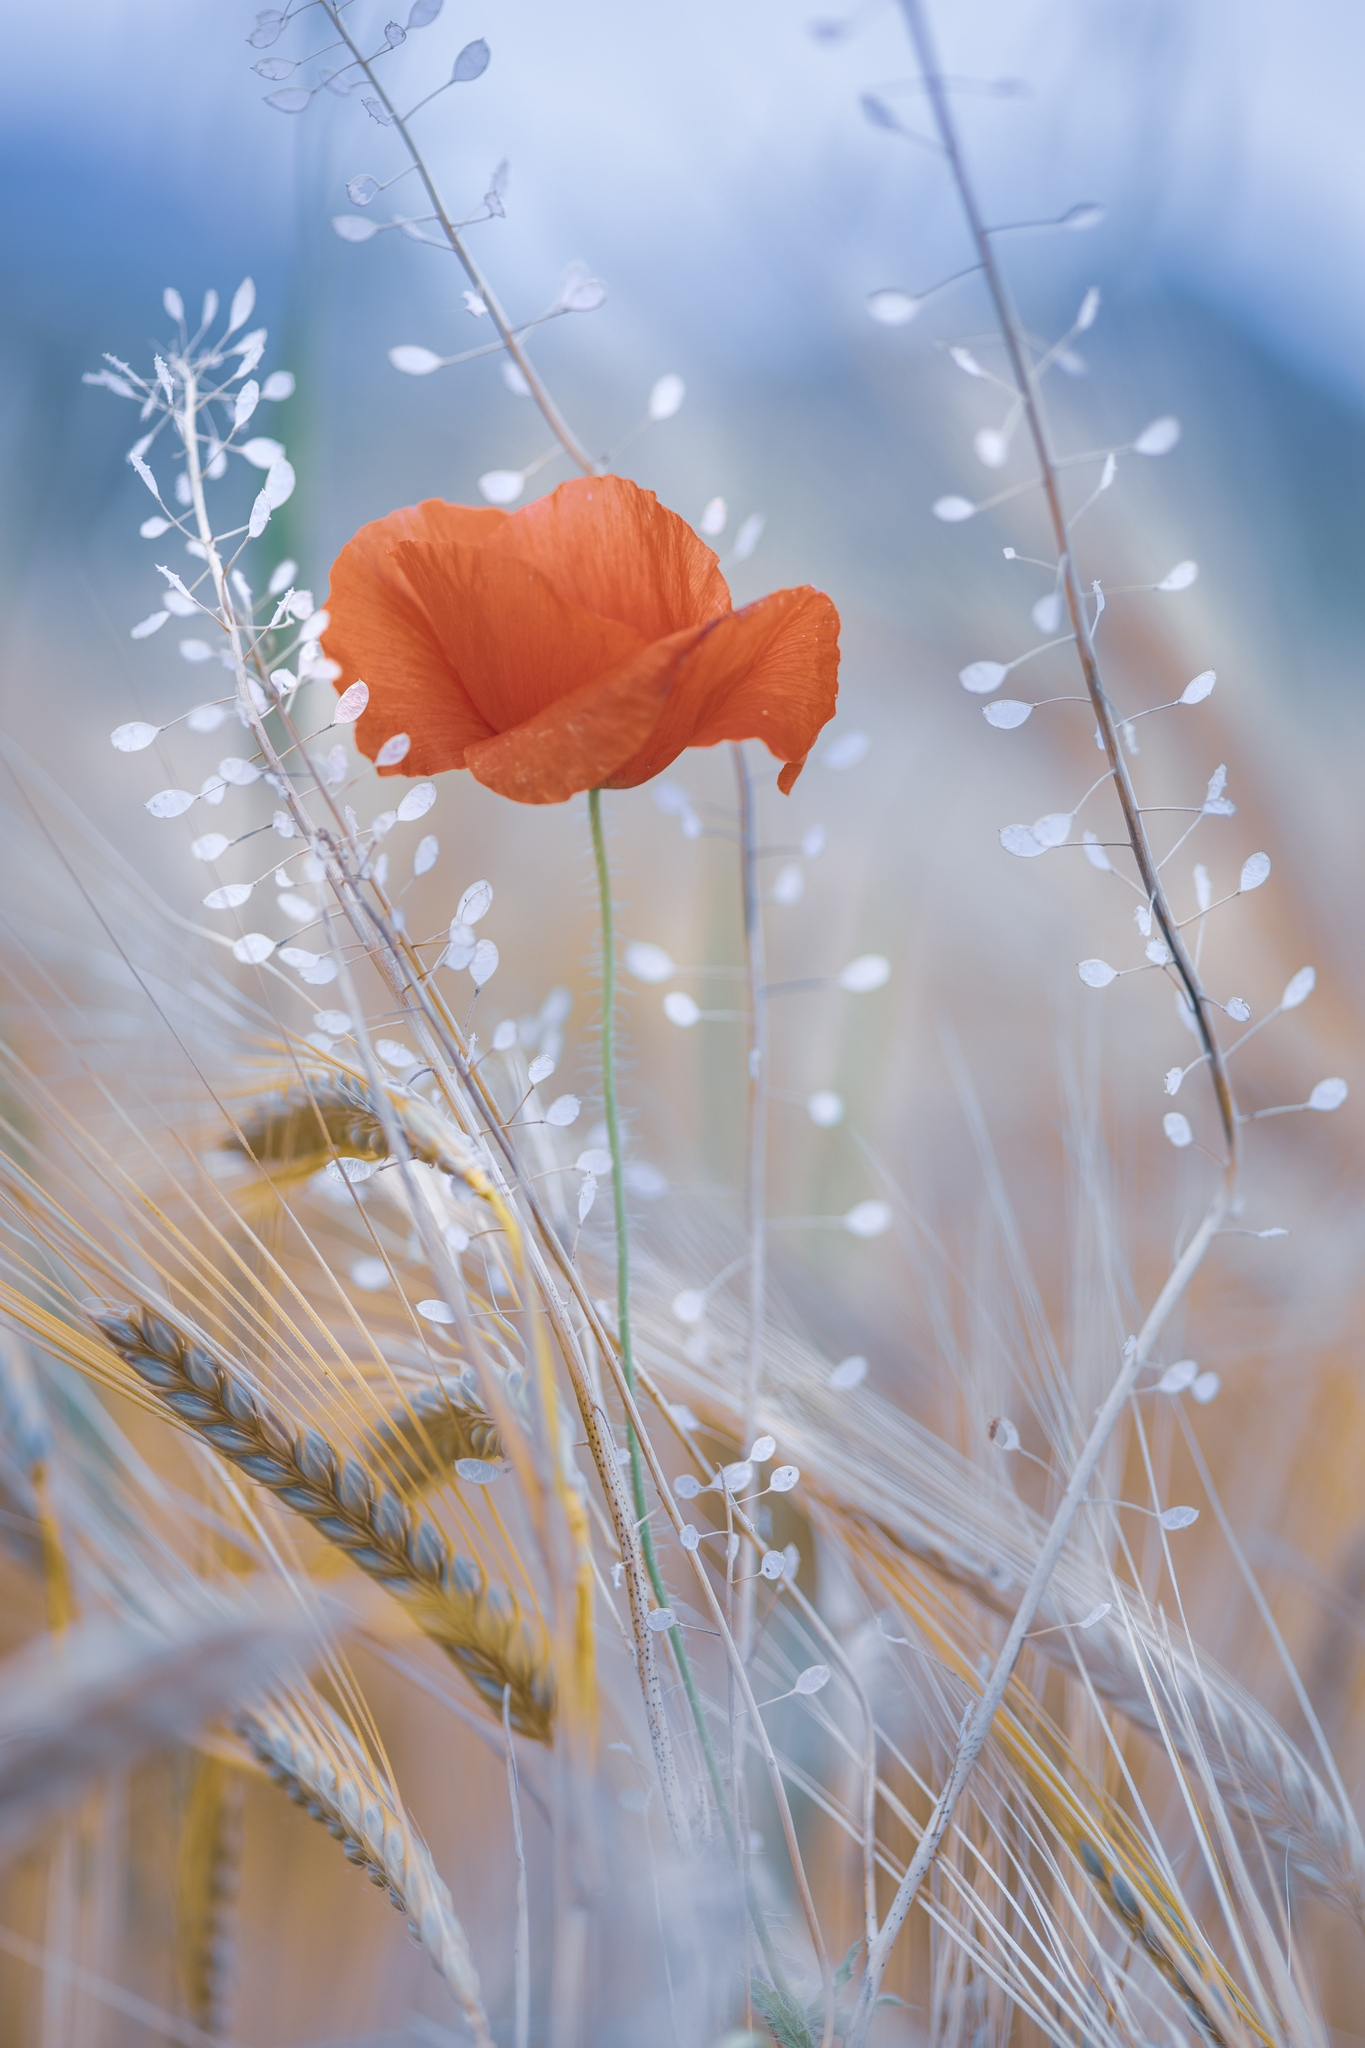 spring. poppies, wheat, nature, macro, flowers, plants, red, blue, white, Righi Eugenia